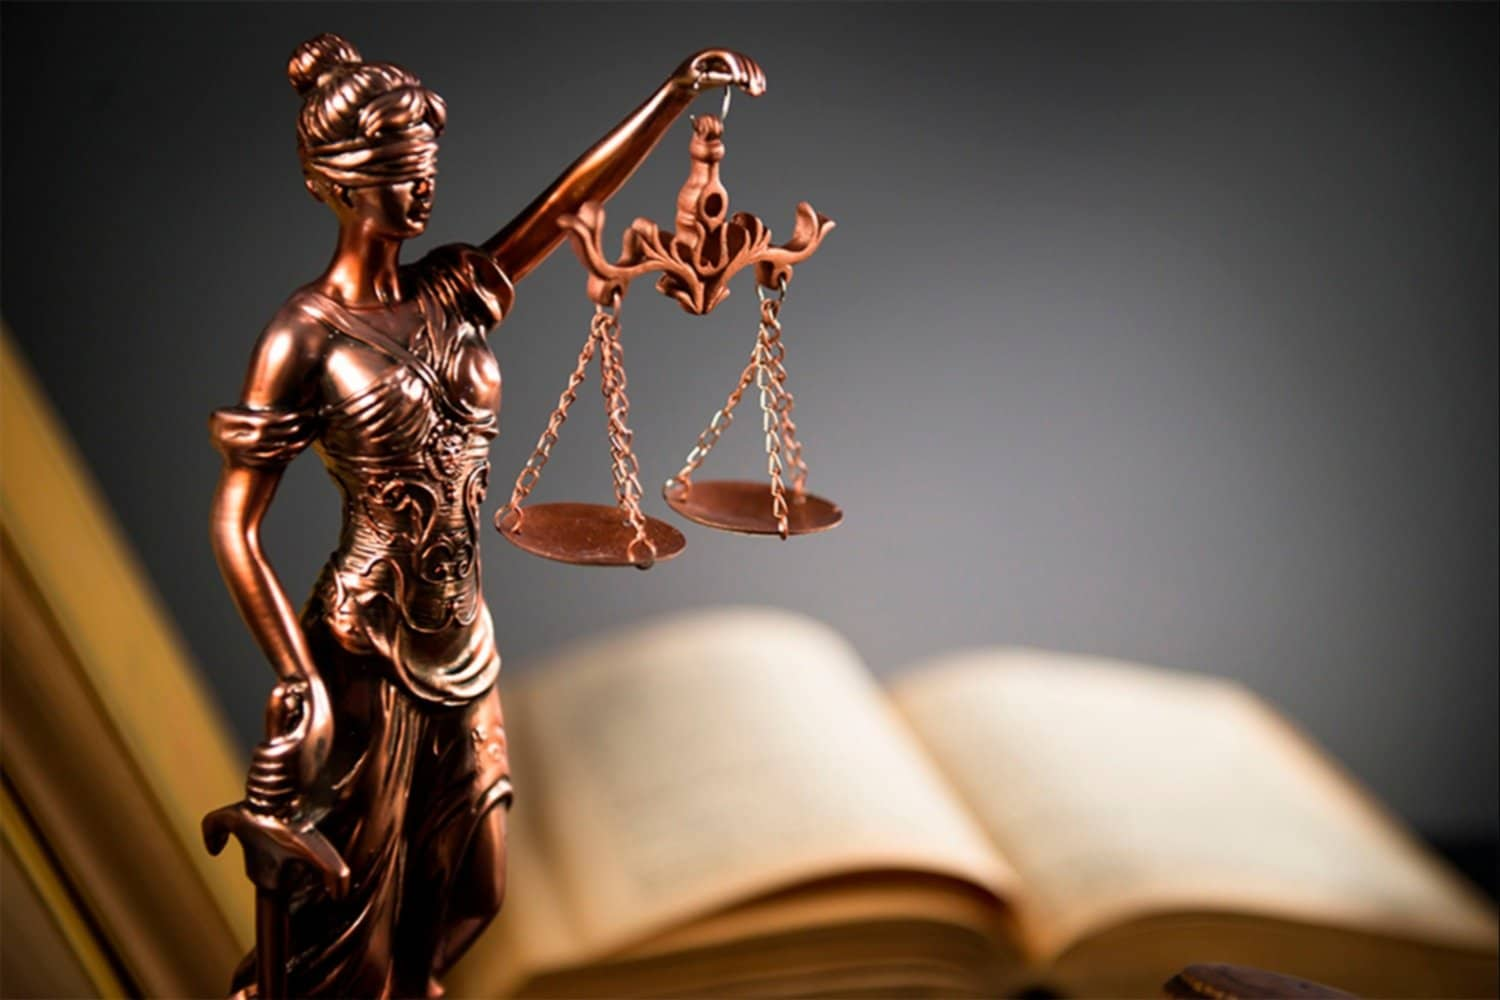 THE JUDICIAL PROTECTION OF THE COMPANY AGAINST ITS CREDITORS